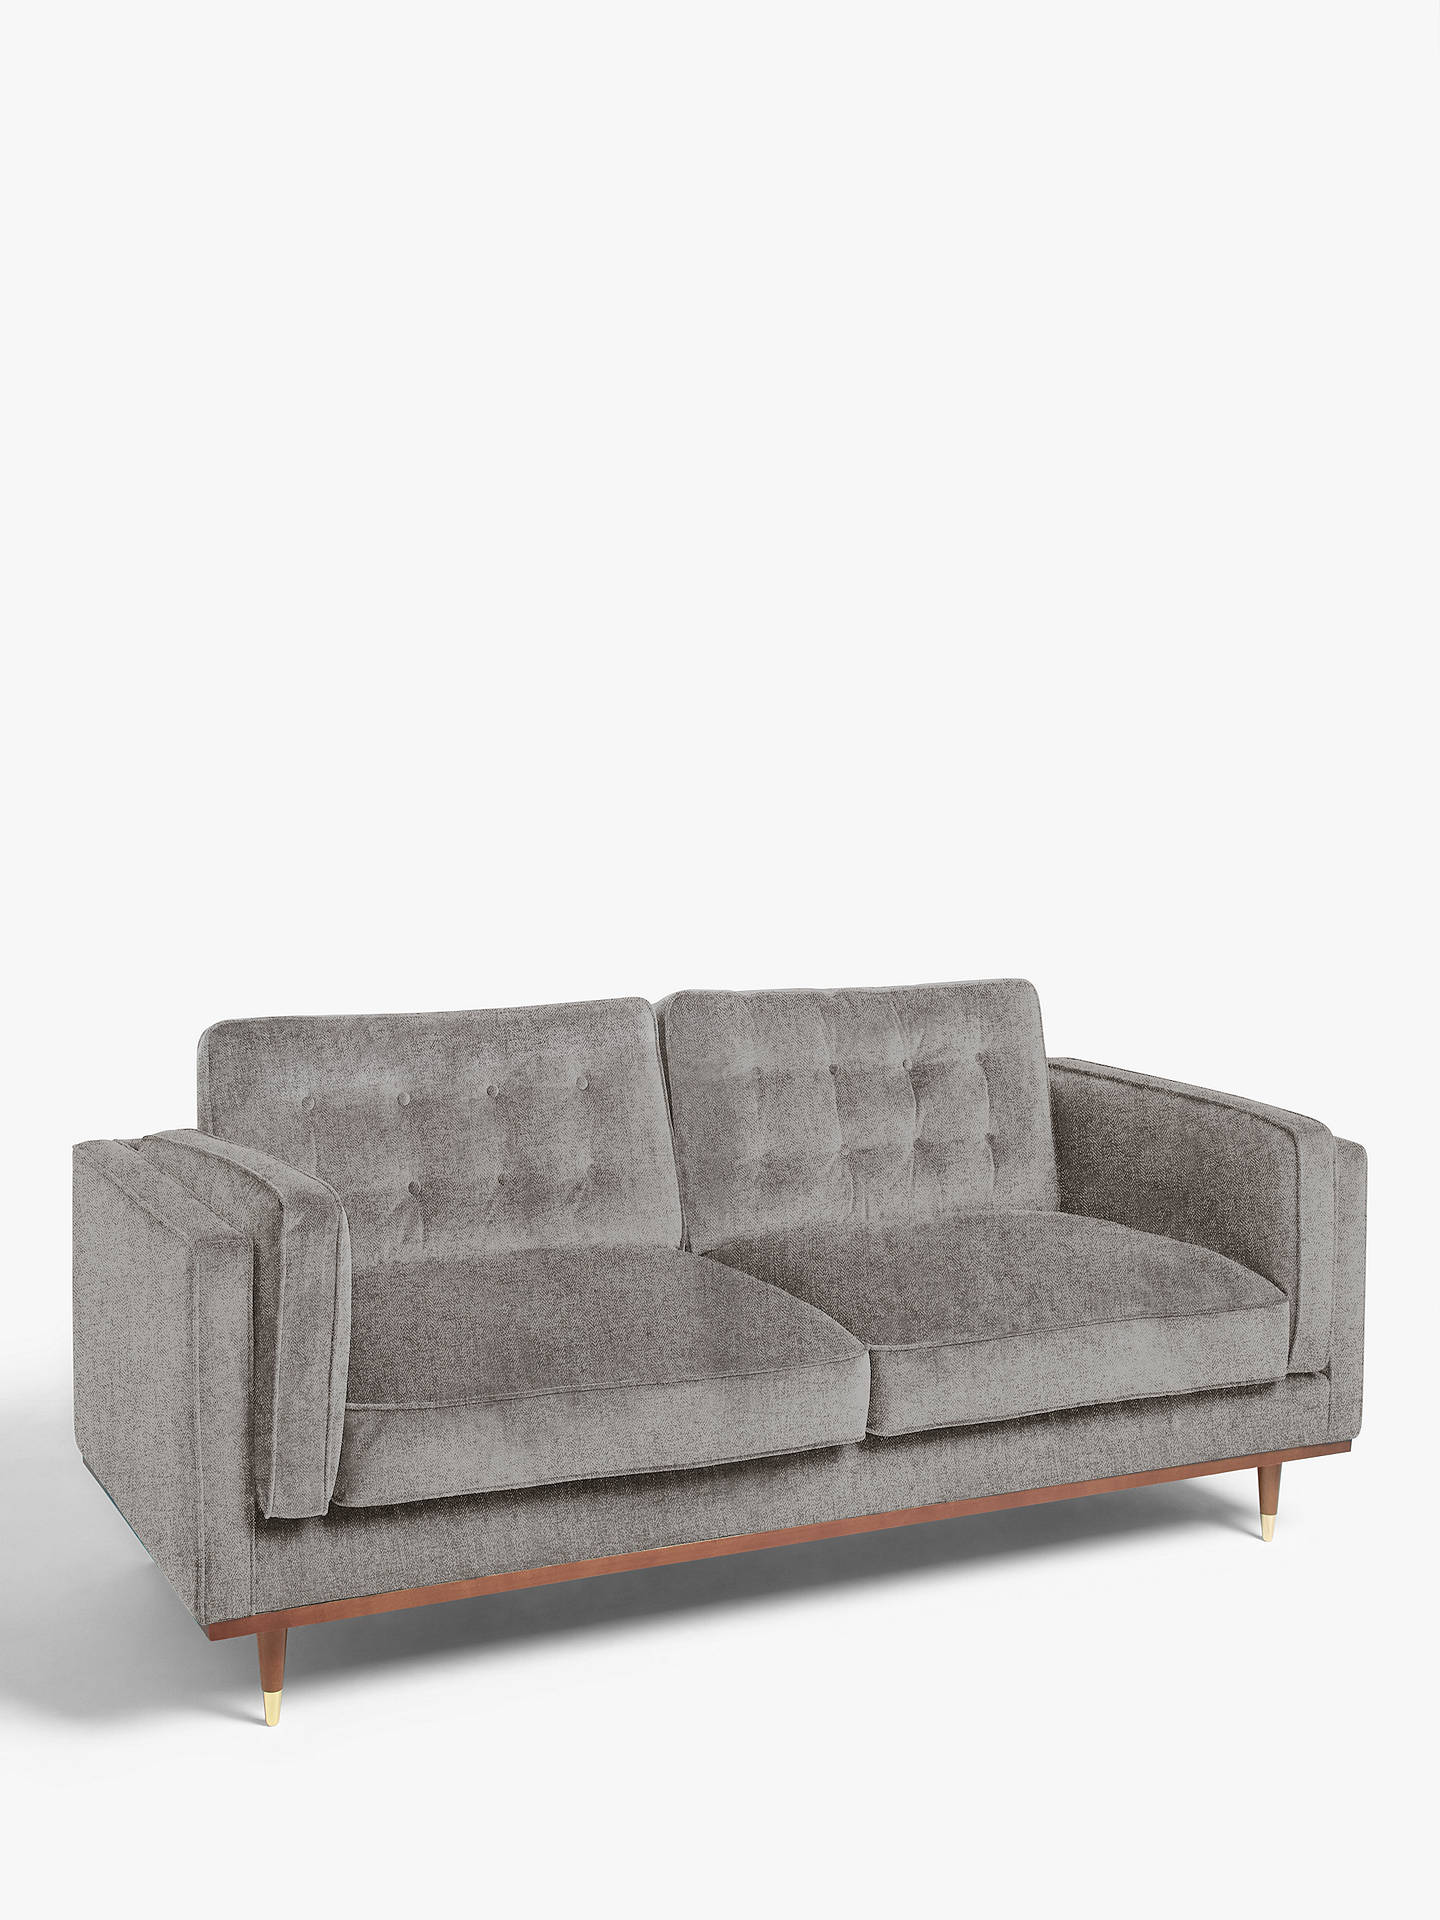 Prime John Lewis Partners Swoon Lyon Medium 2 Seater Sofa Cjindustries Chair Design For Home Cjindustriesco